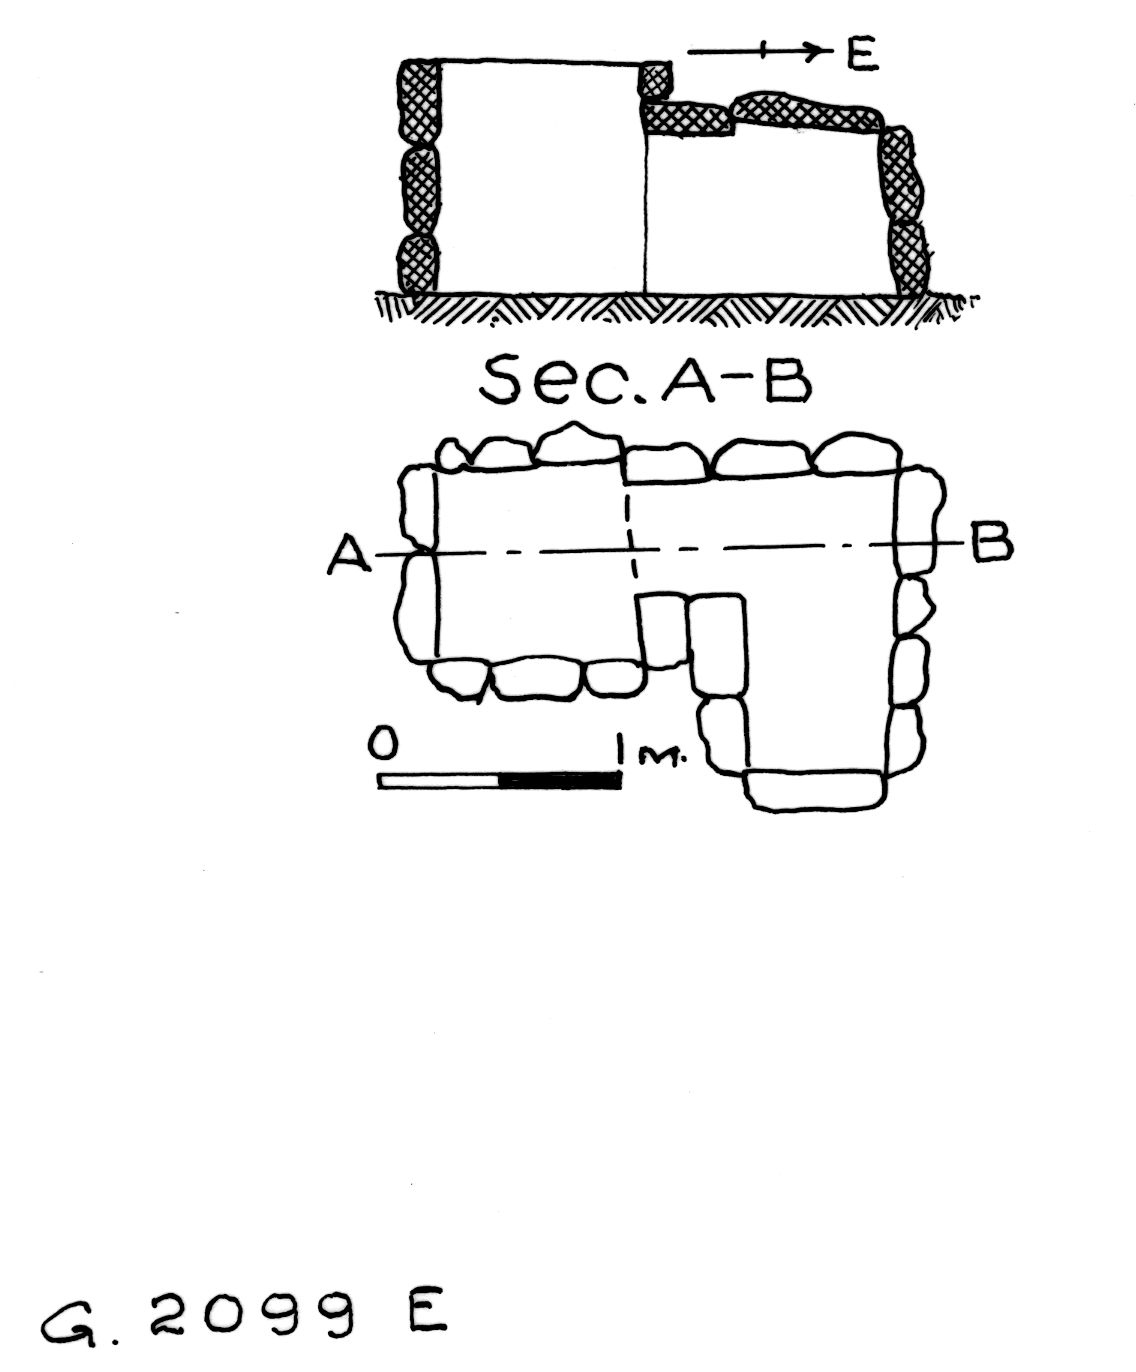 Maps and plans: G 2099, Shaft E